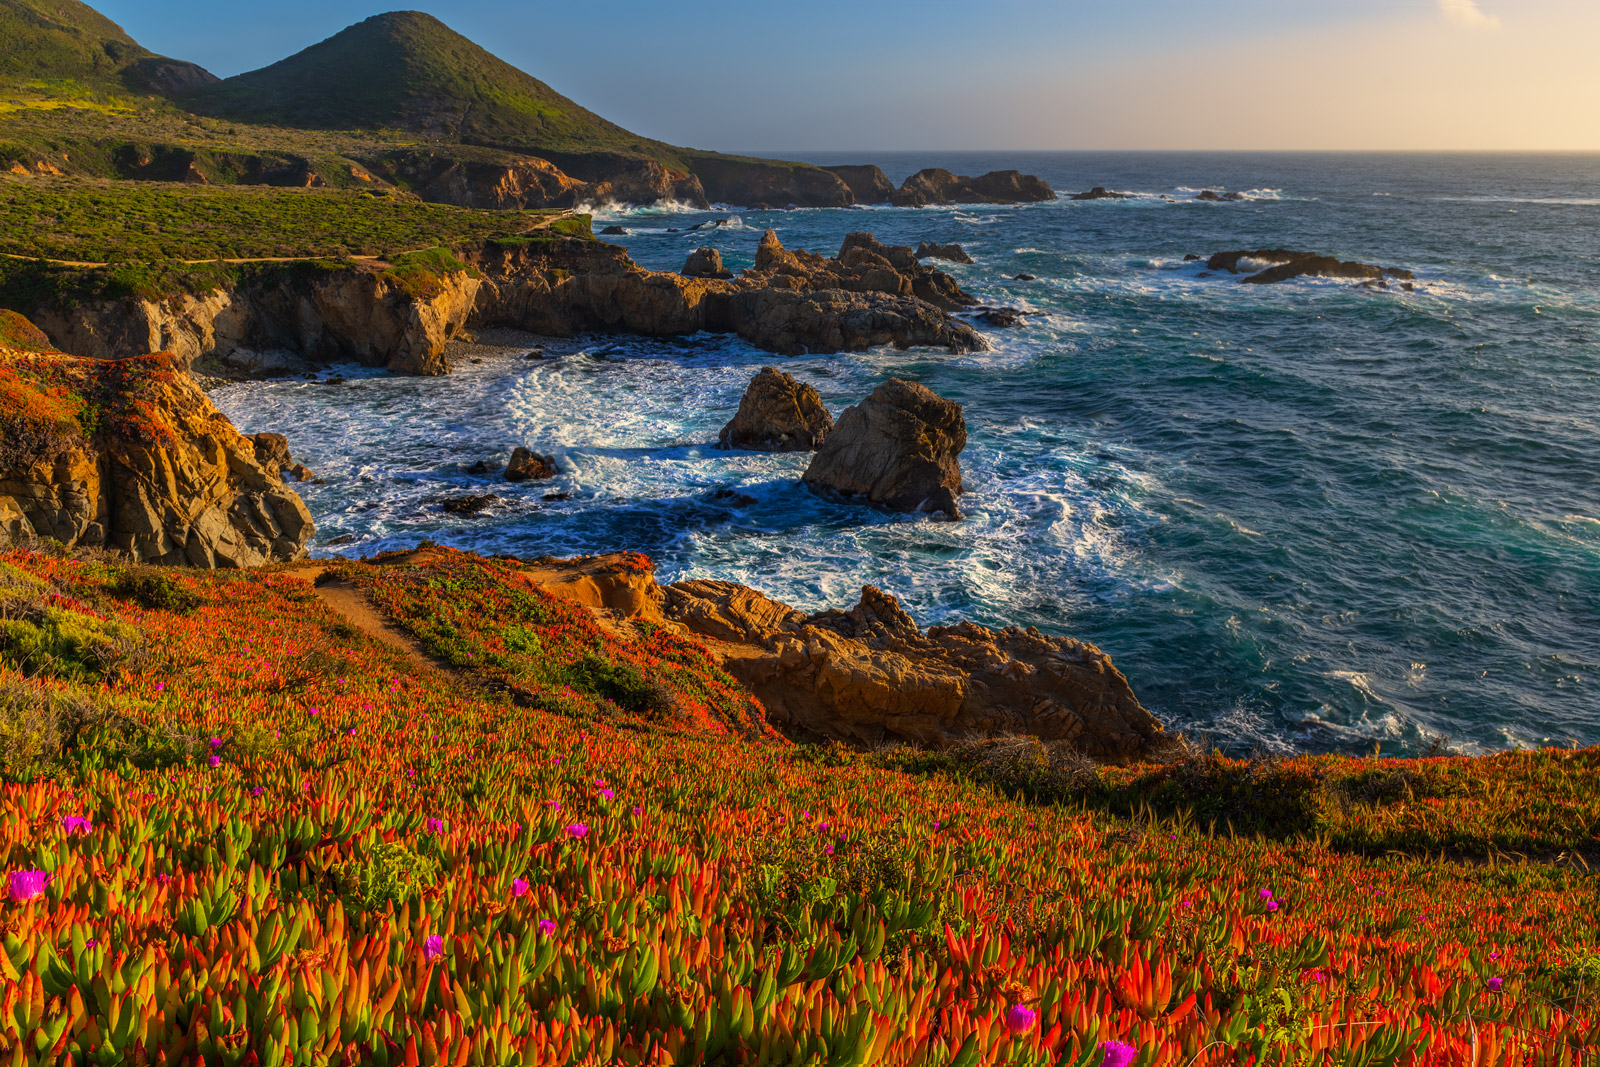 A Limited Edition, Fine Art photograph of Spring colors on the Big Sur Coast at Soberanos Point in California. Available as a...